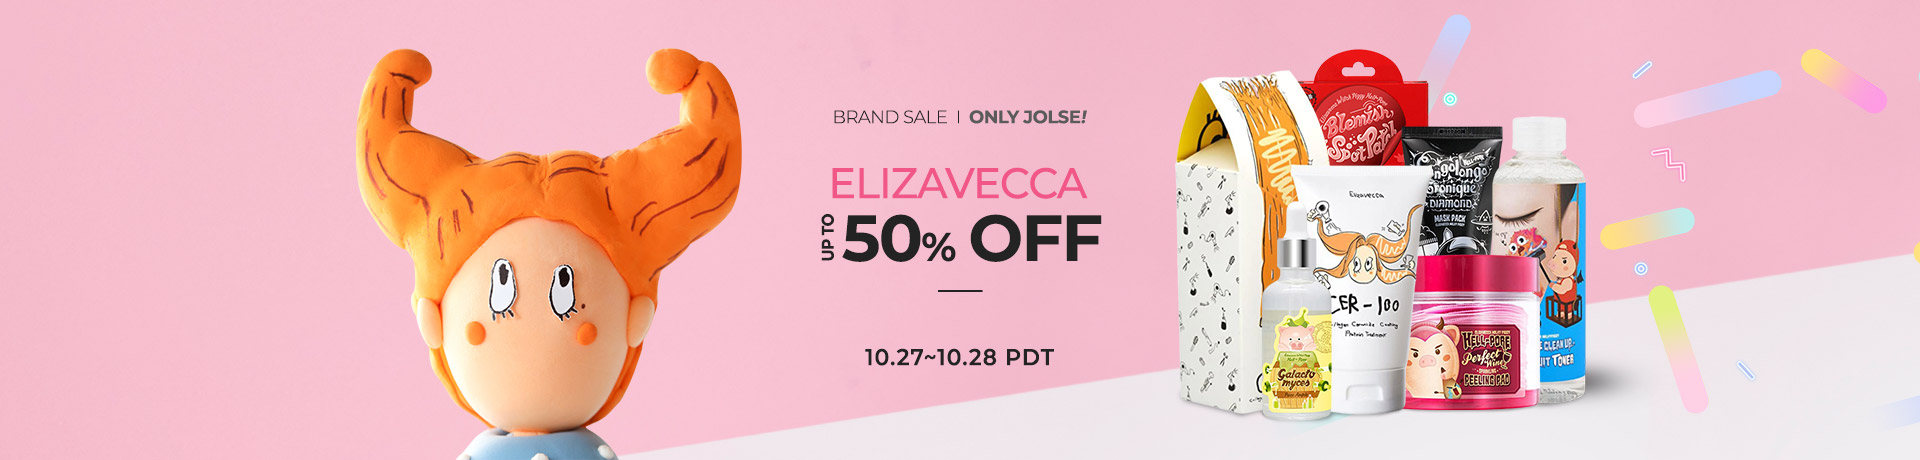 Elizavecca Up to 00% OFF